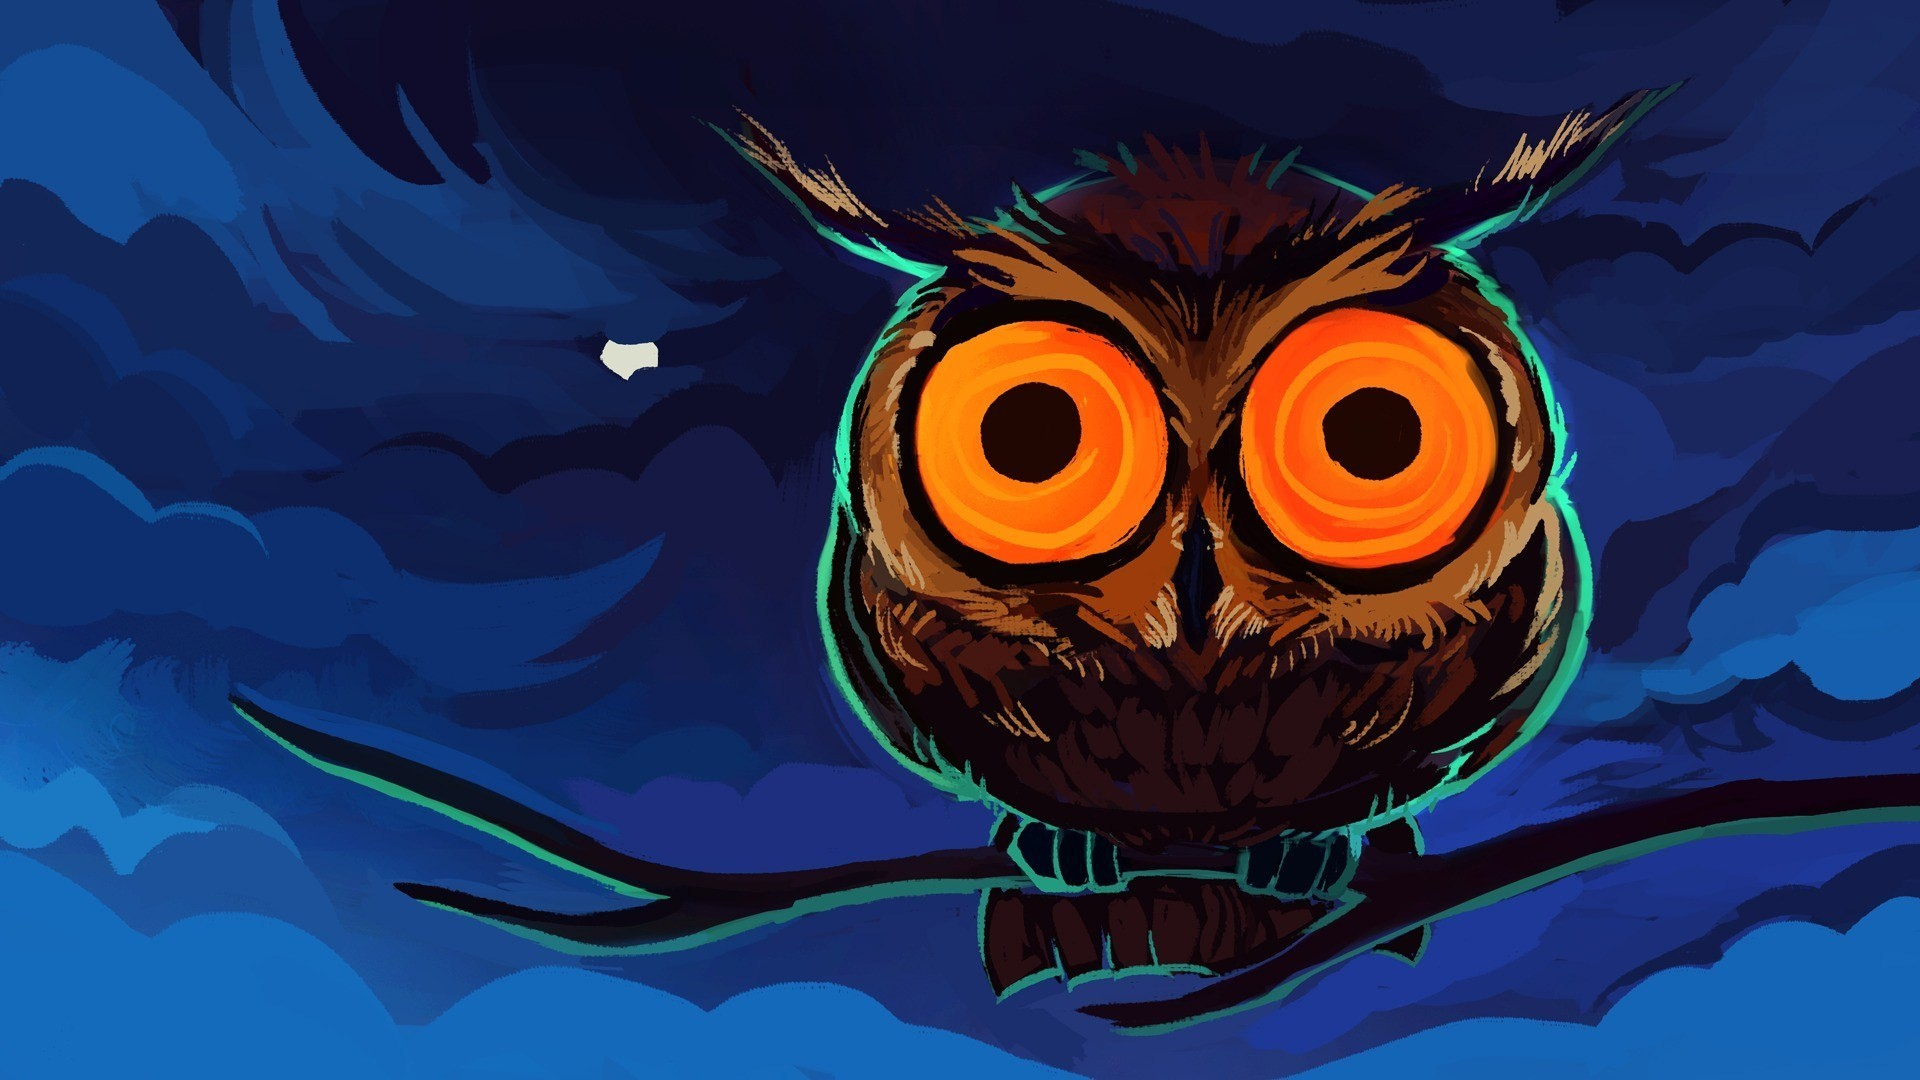 Halloween Wallpaper Painted owl with round eyes